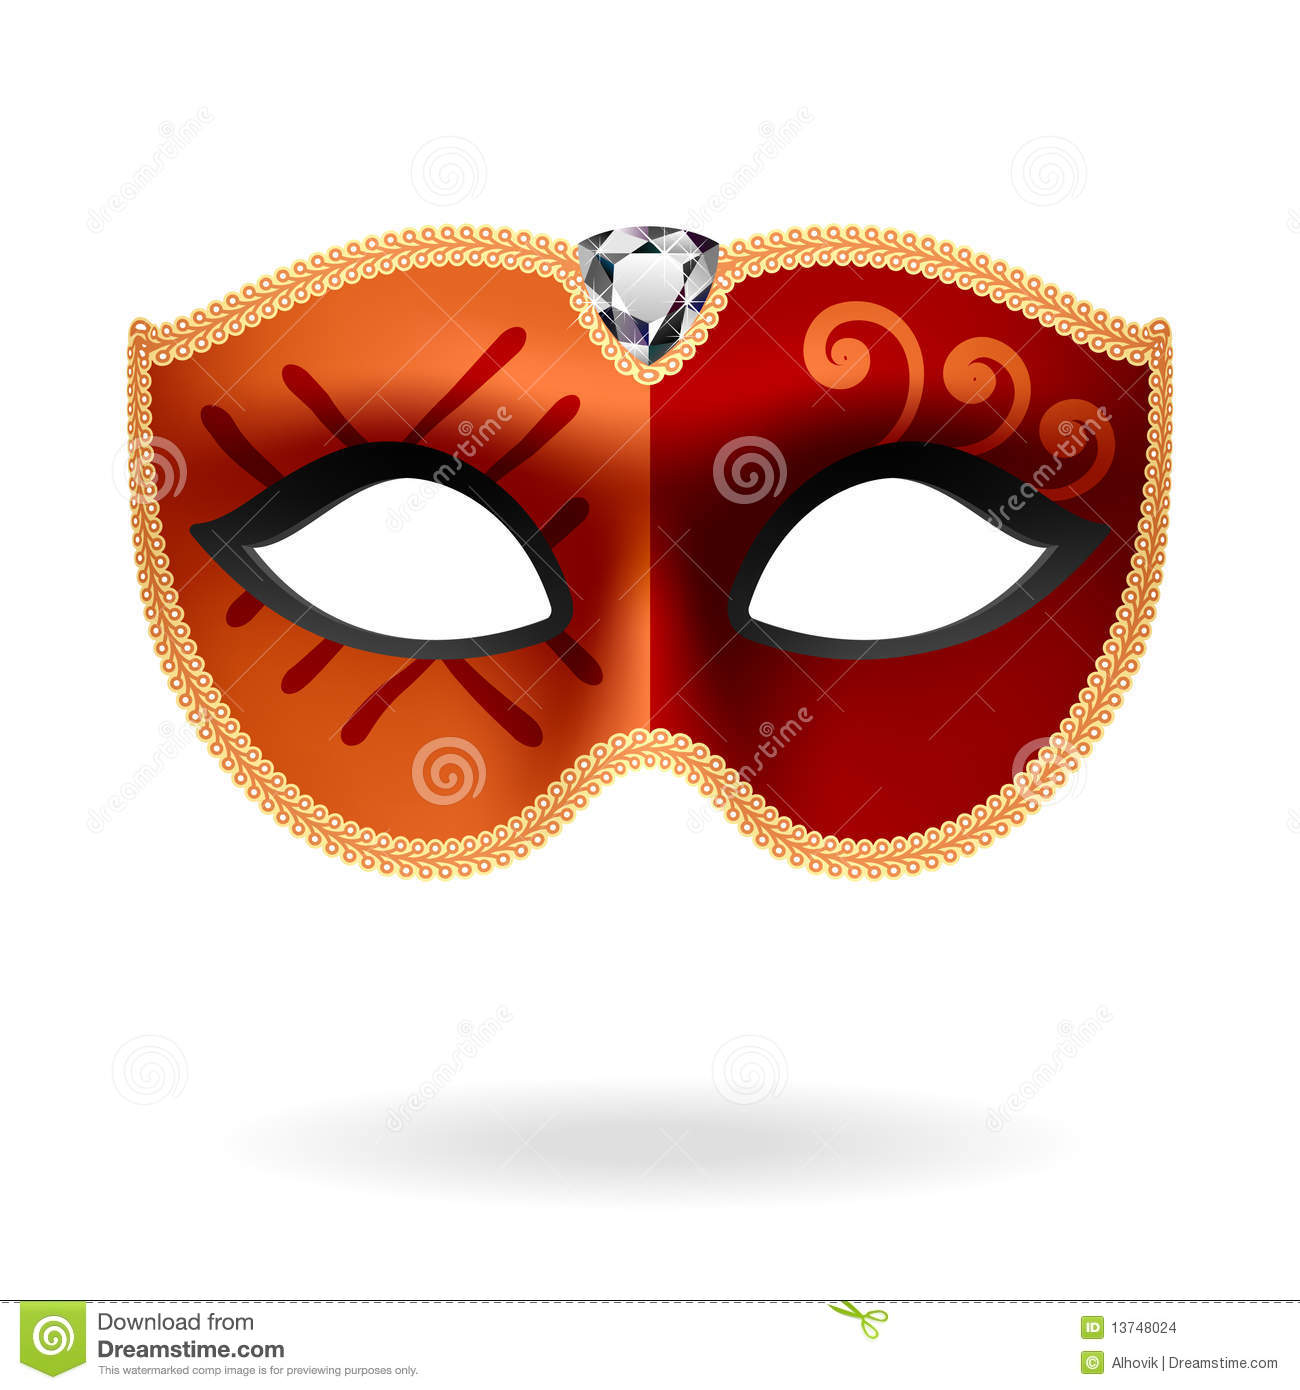 Masquerade Masks Clip Art Red masquerade mask stock images - image ...